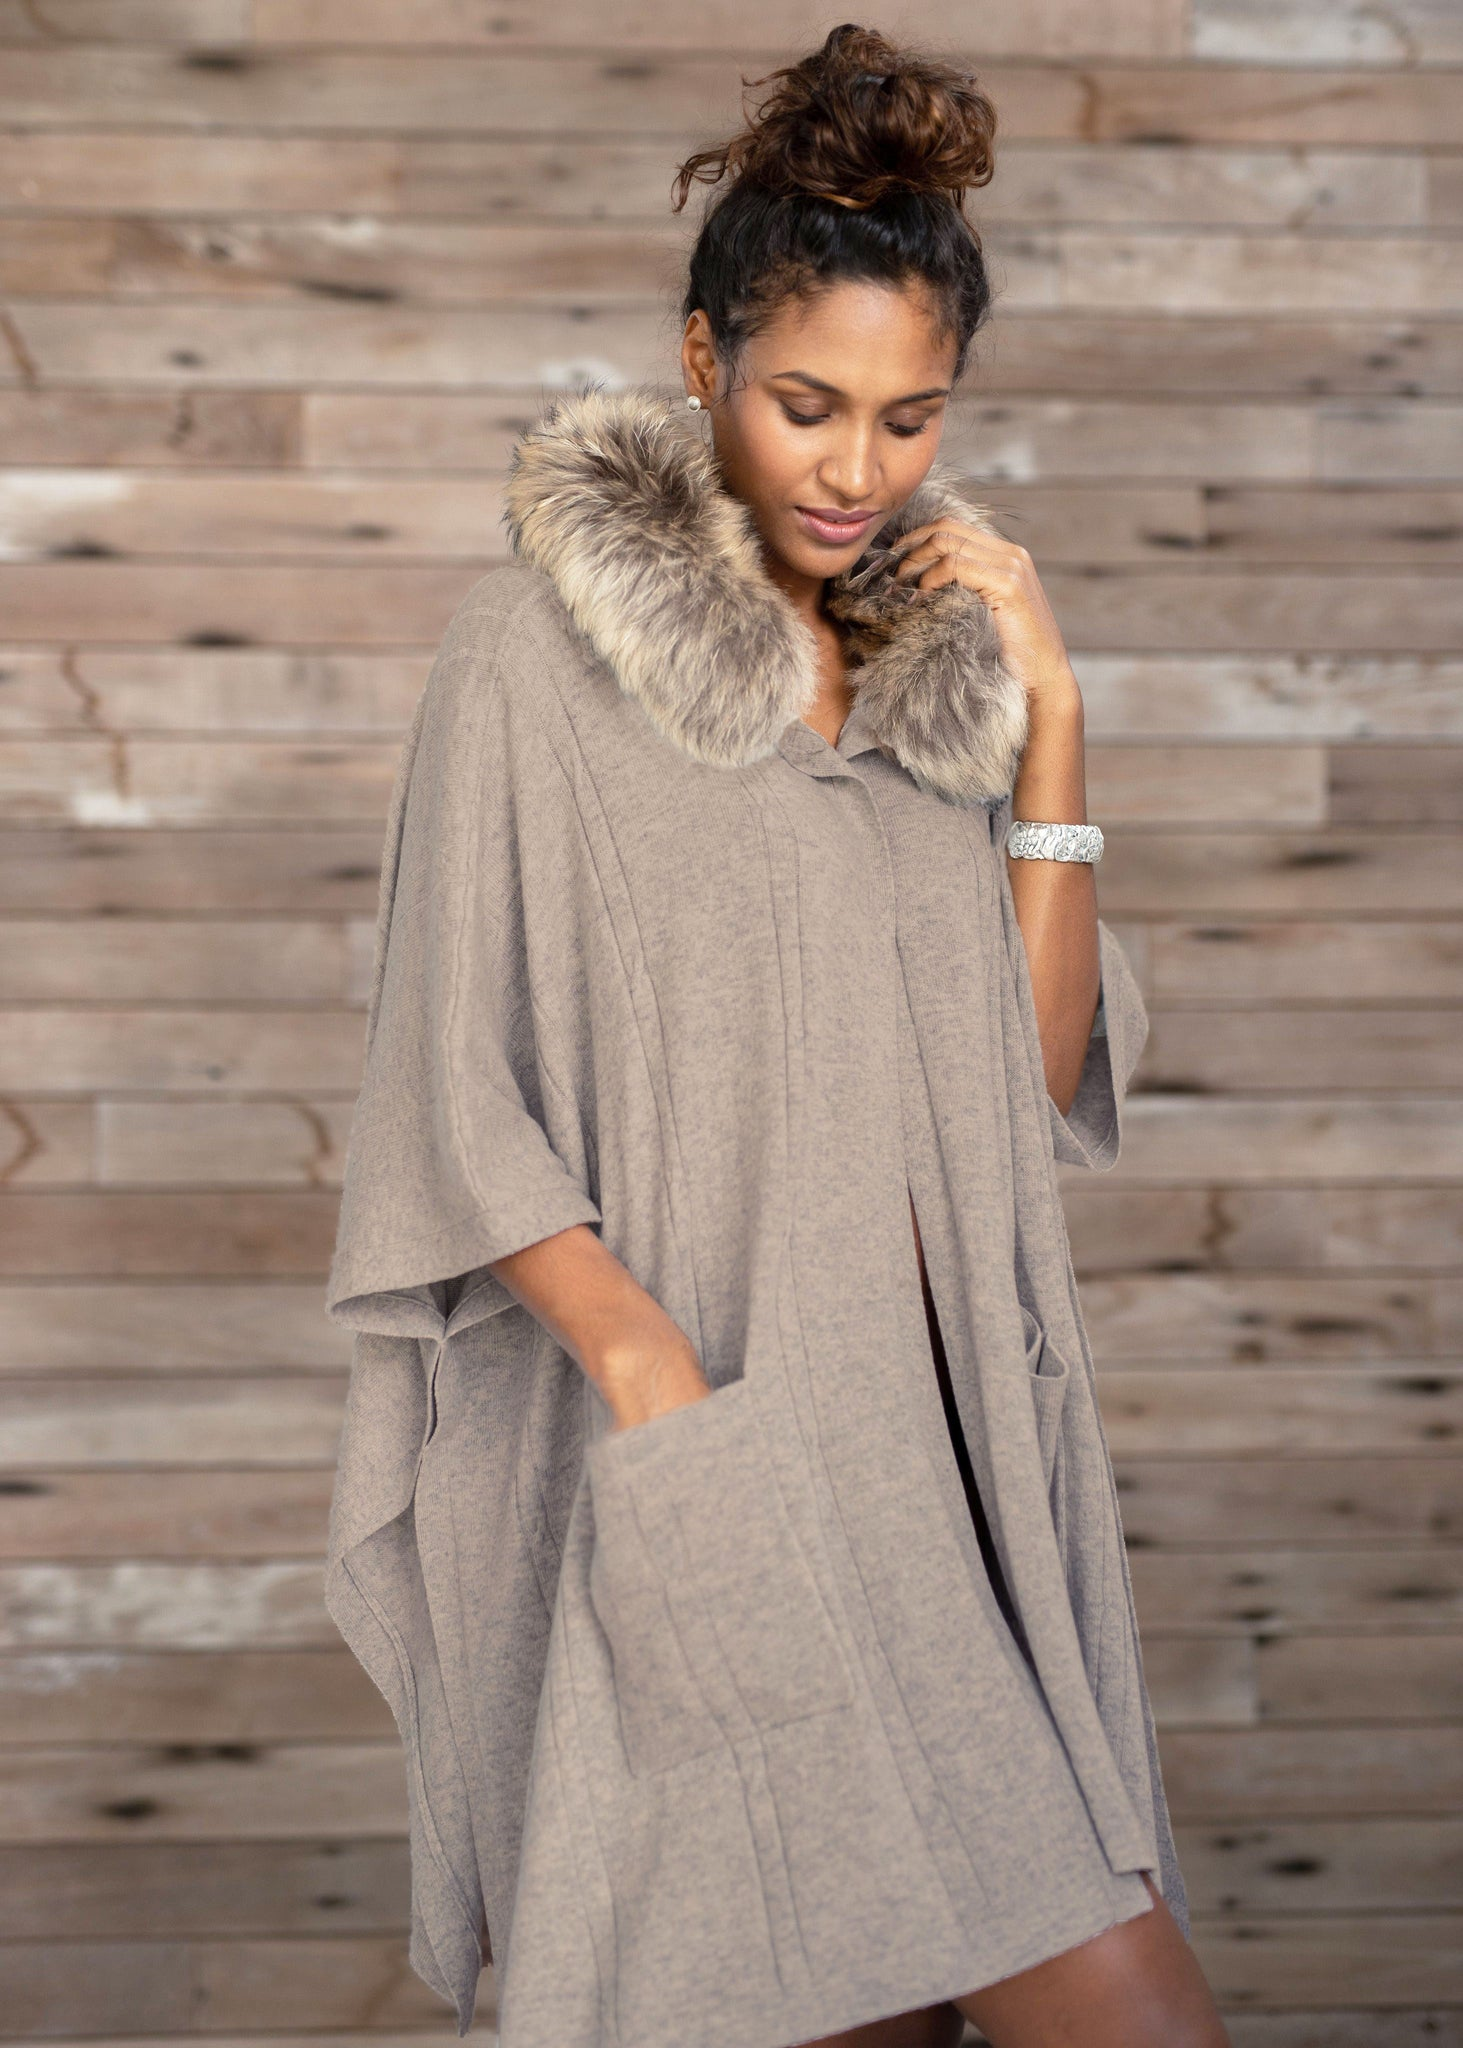 KATE | Our fur-lined hooded cape